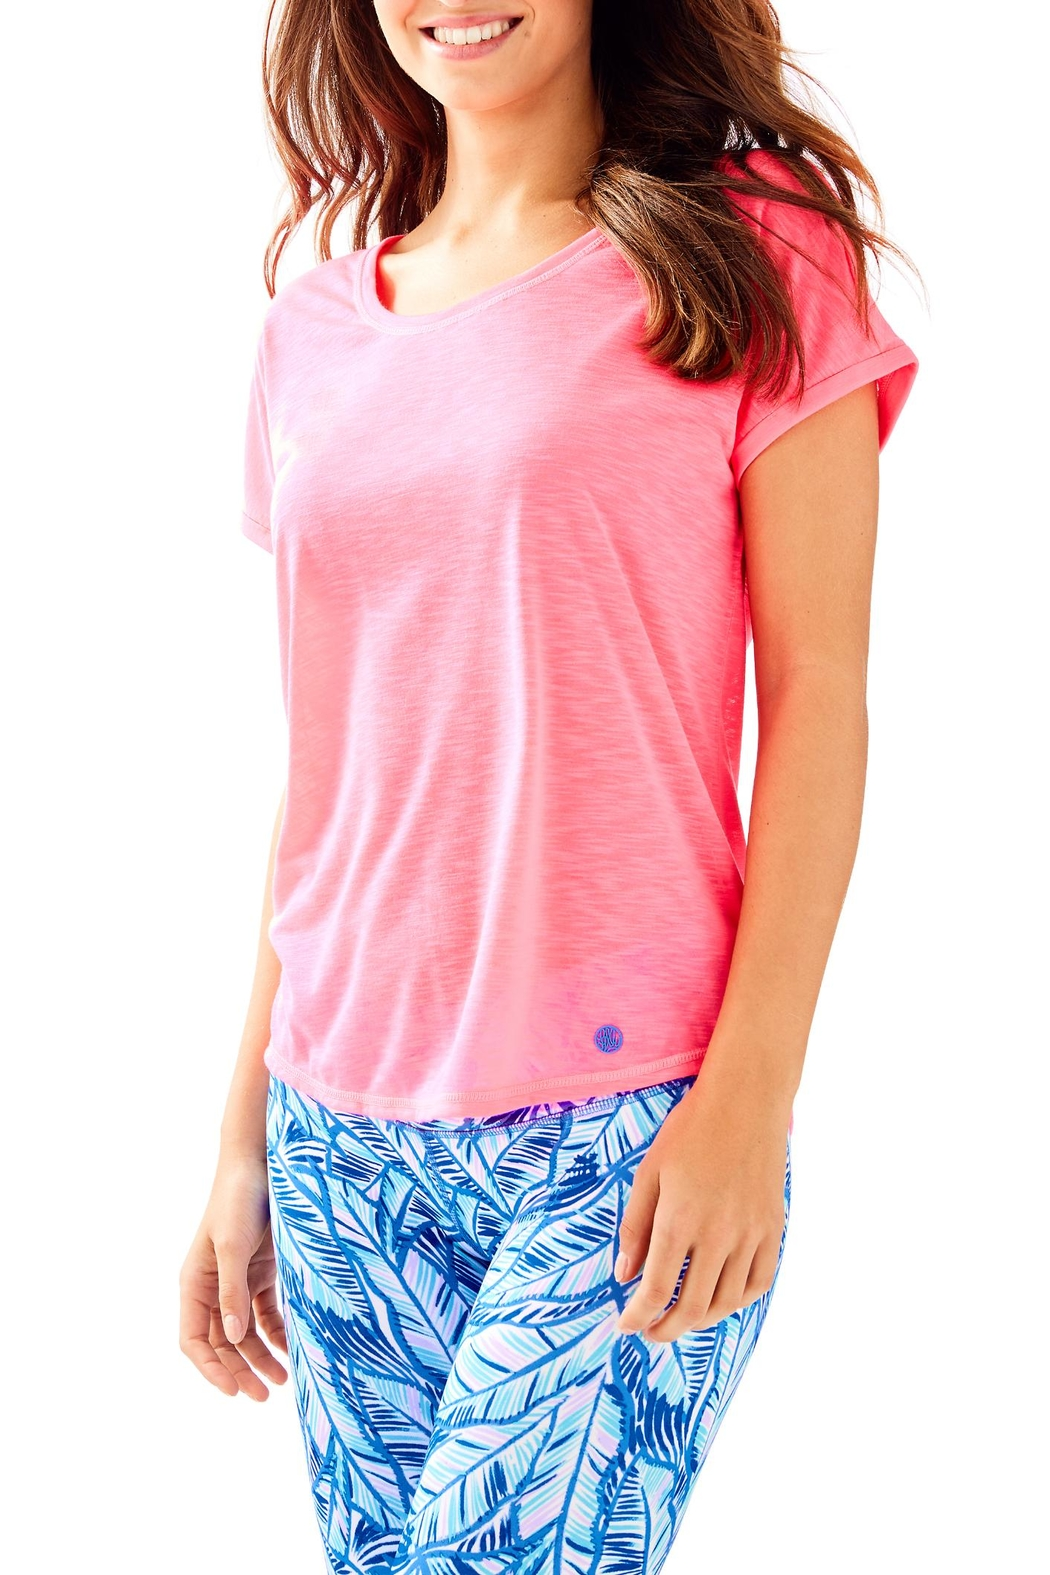 Lilly Pulitzer Luxletic Bryana Tee - Main Image